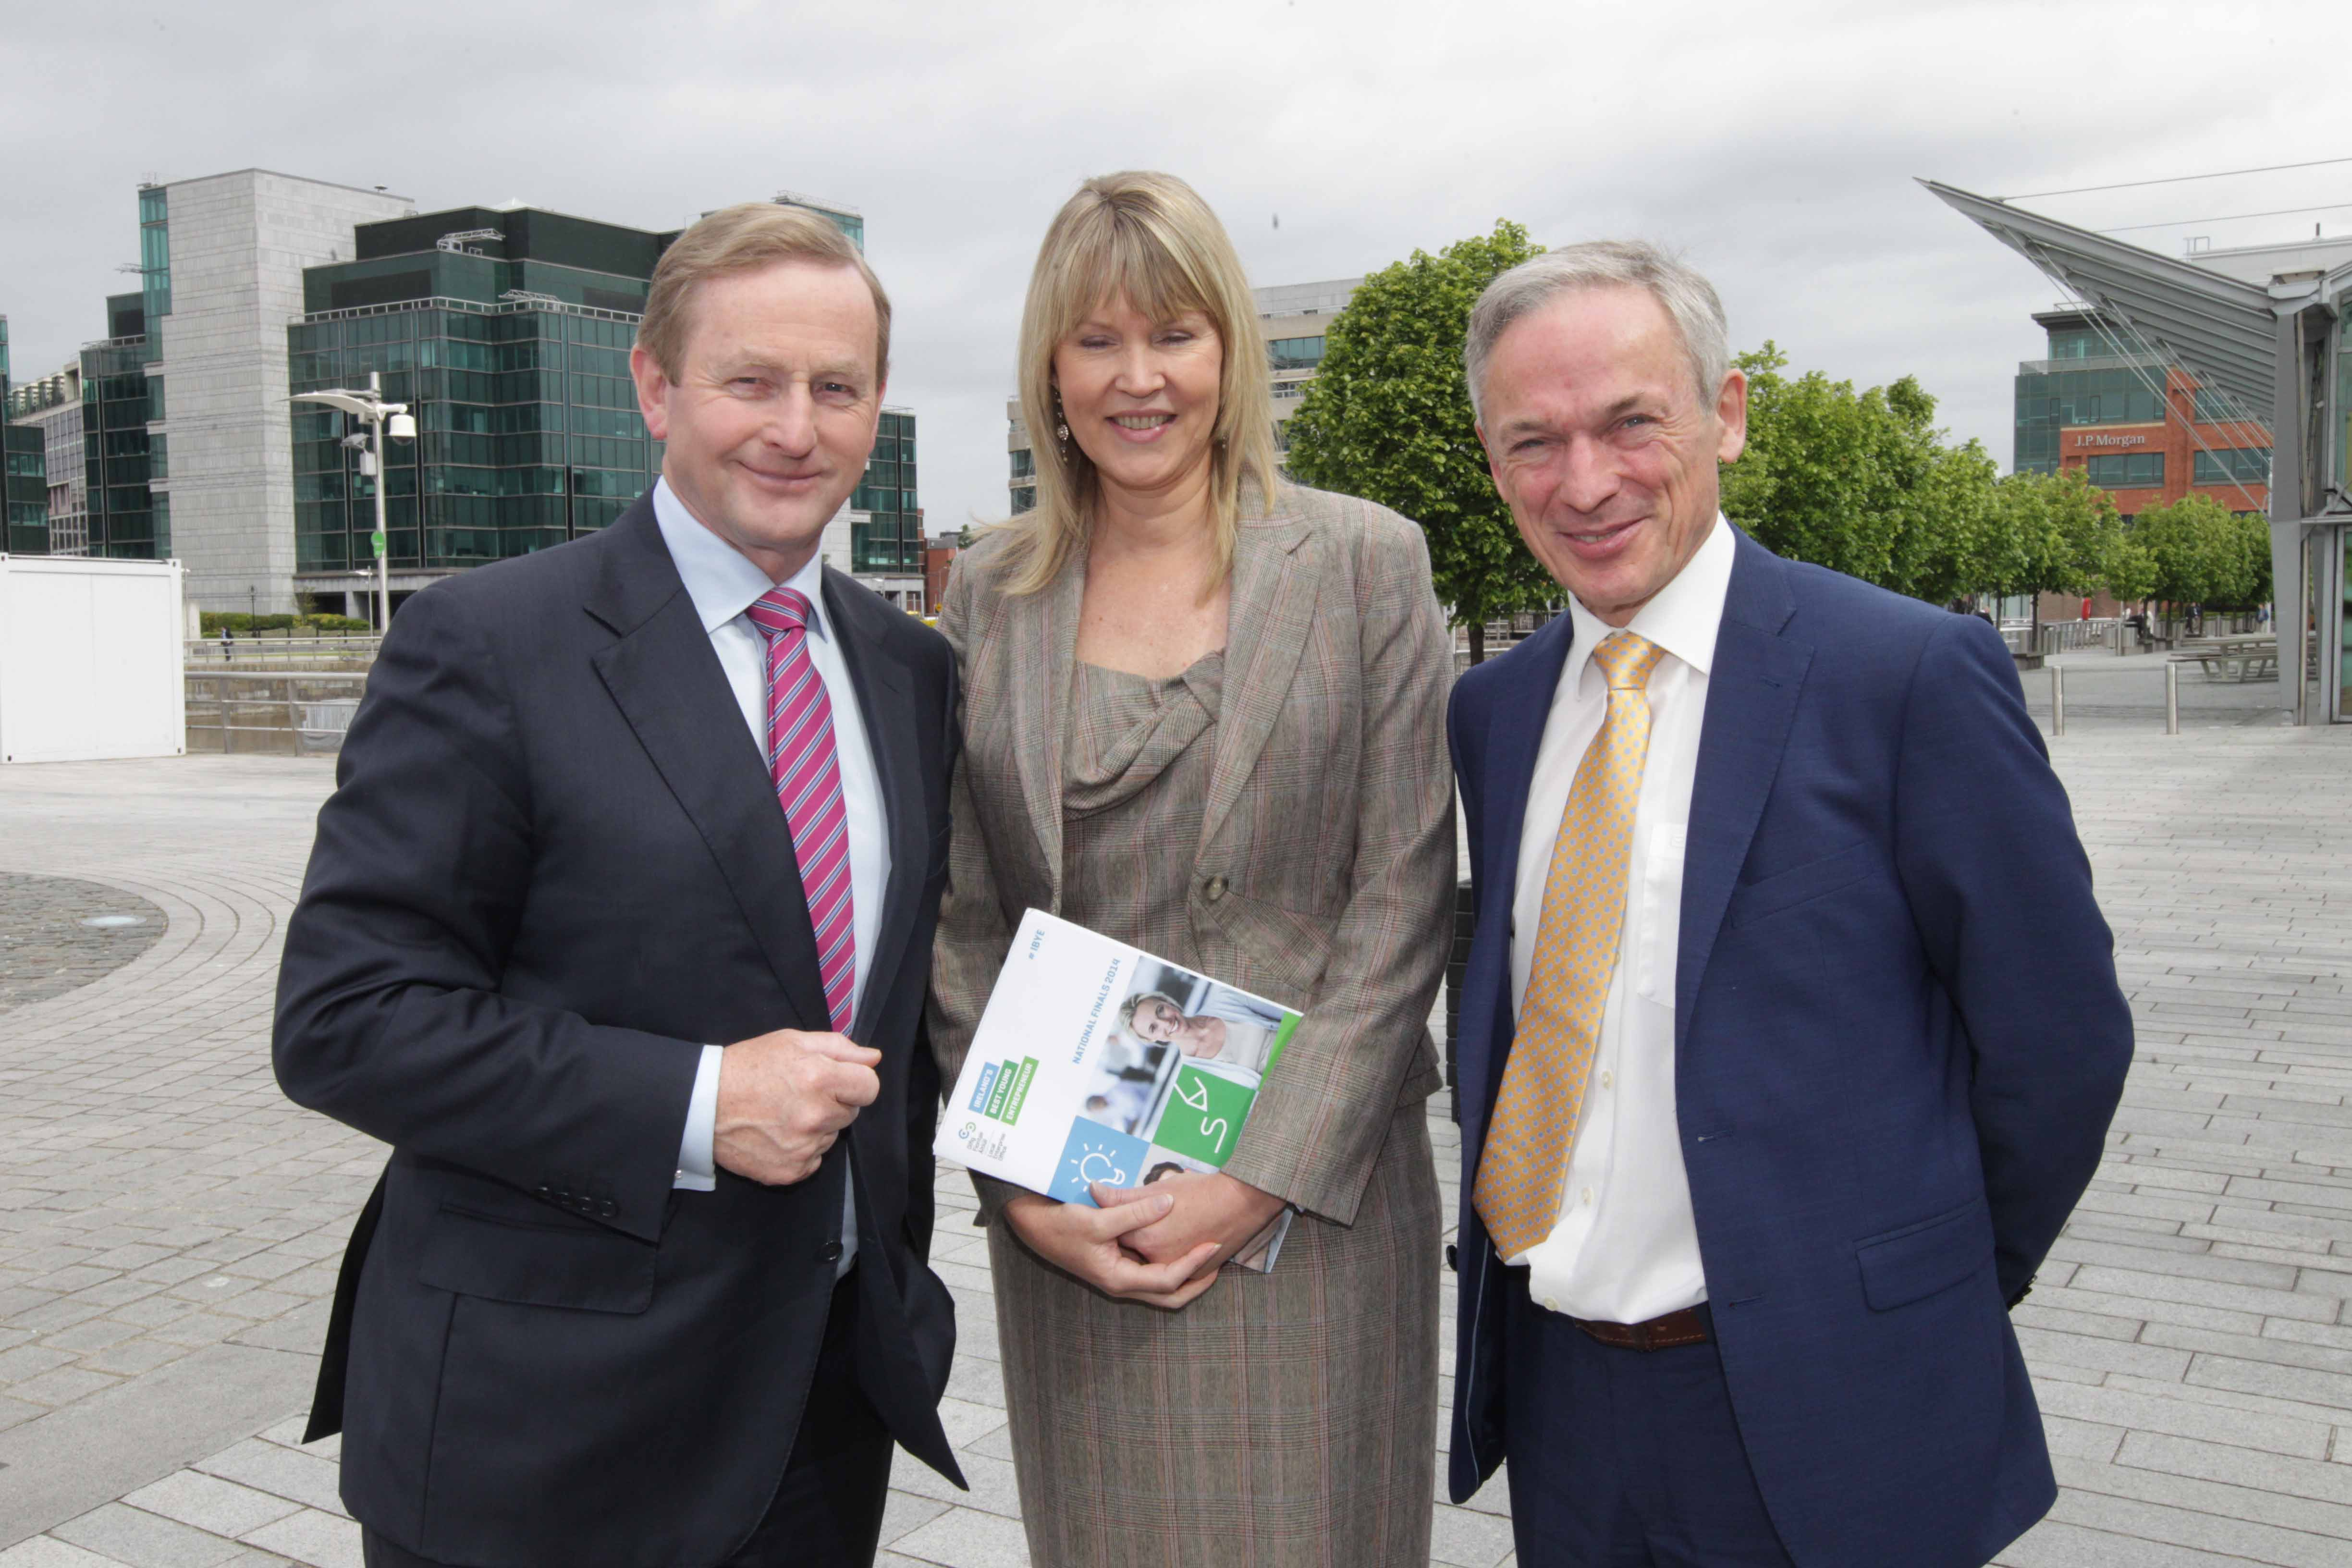 An Taoiseach Enda Kenny TD and Minister Richard Bruton with Sheelagh Daly Wicklow LEO at launch of IBYE 2015